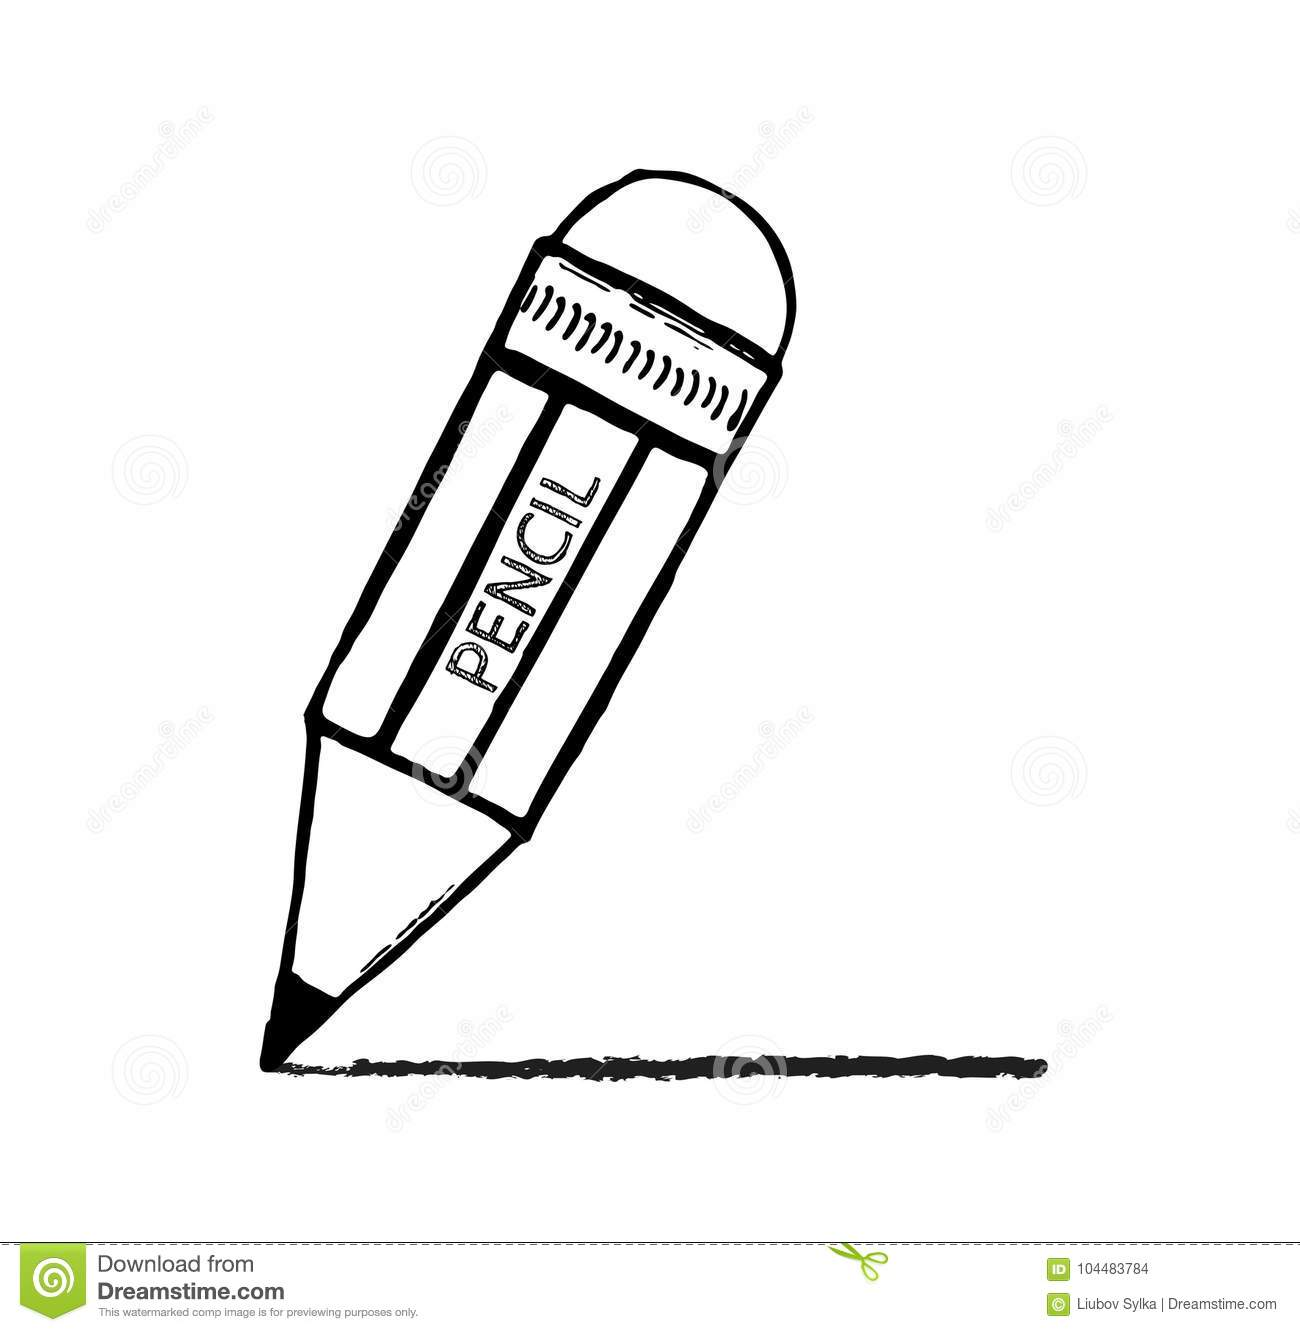 Pencil sketch cartoon vector illustration hand drawn pencil with a